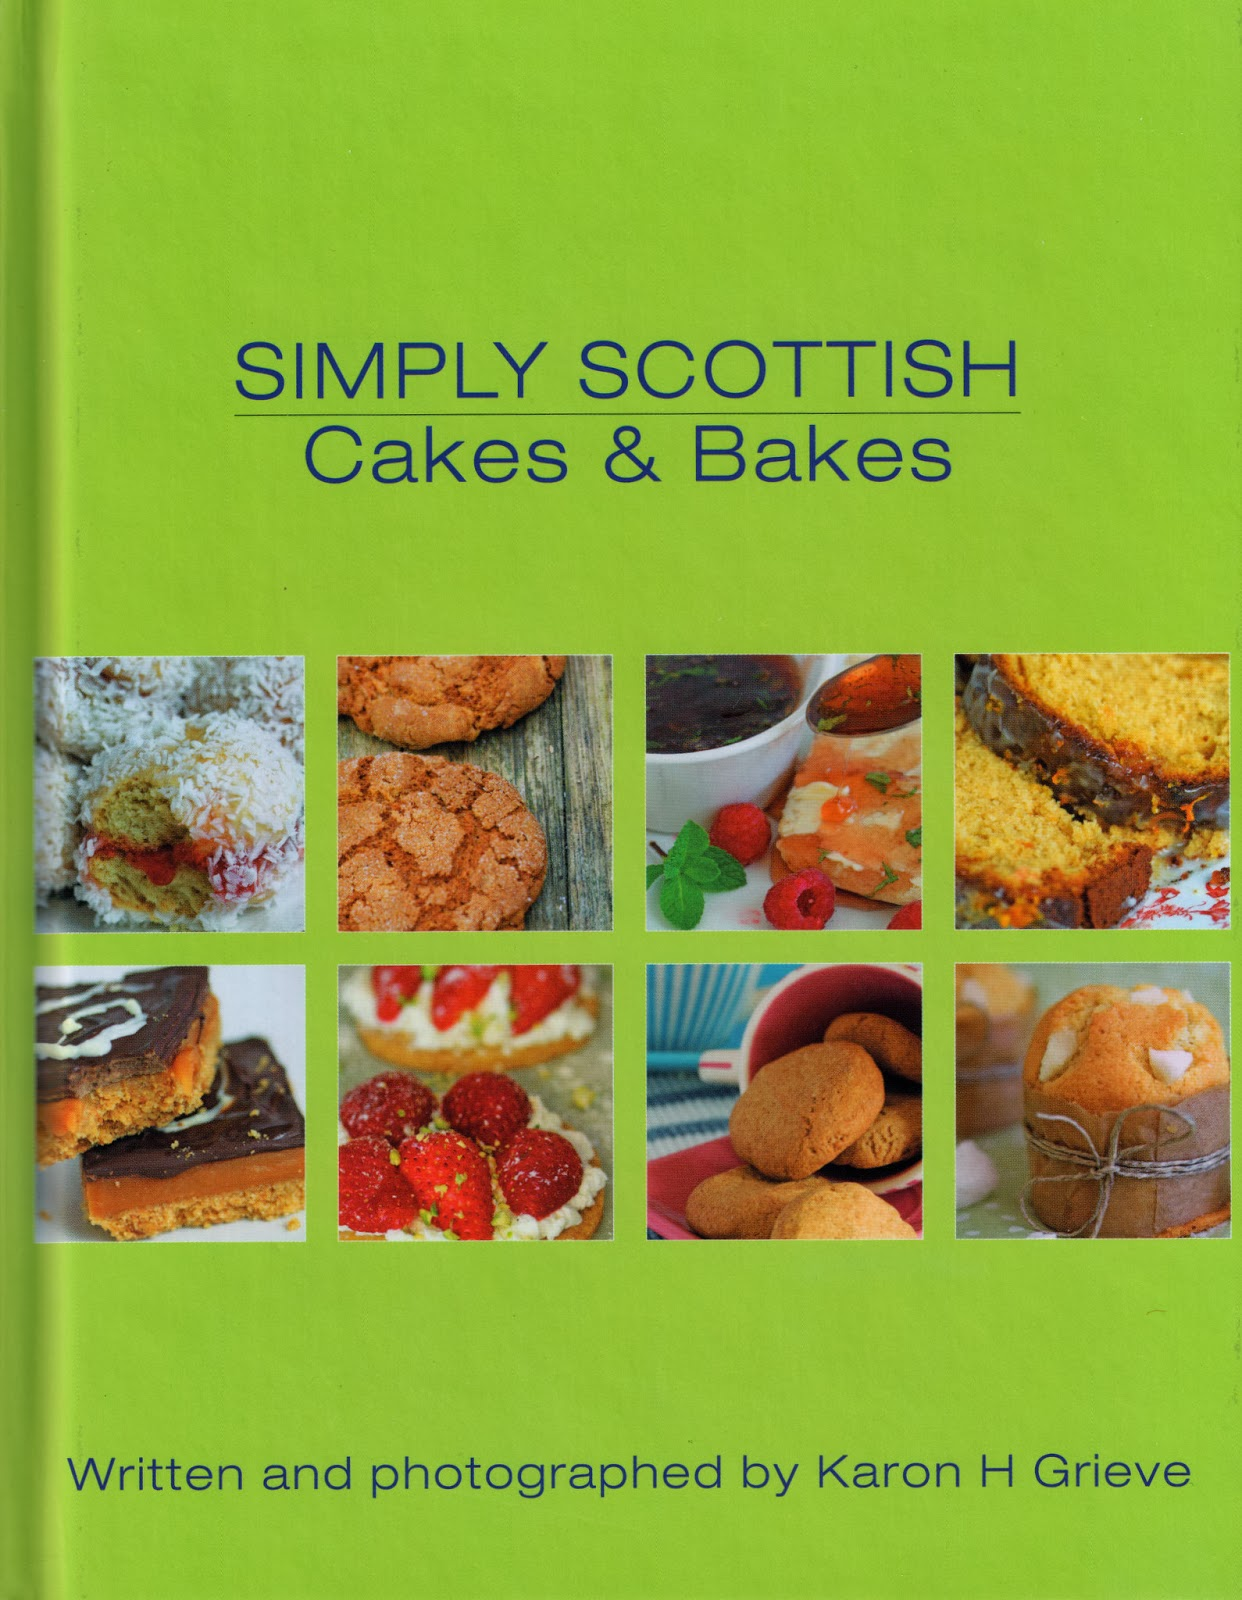 Simply Scottish Cakes & Bakes.